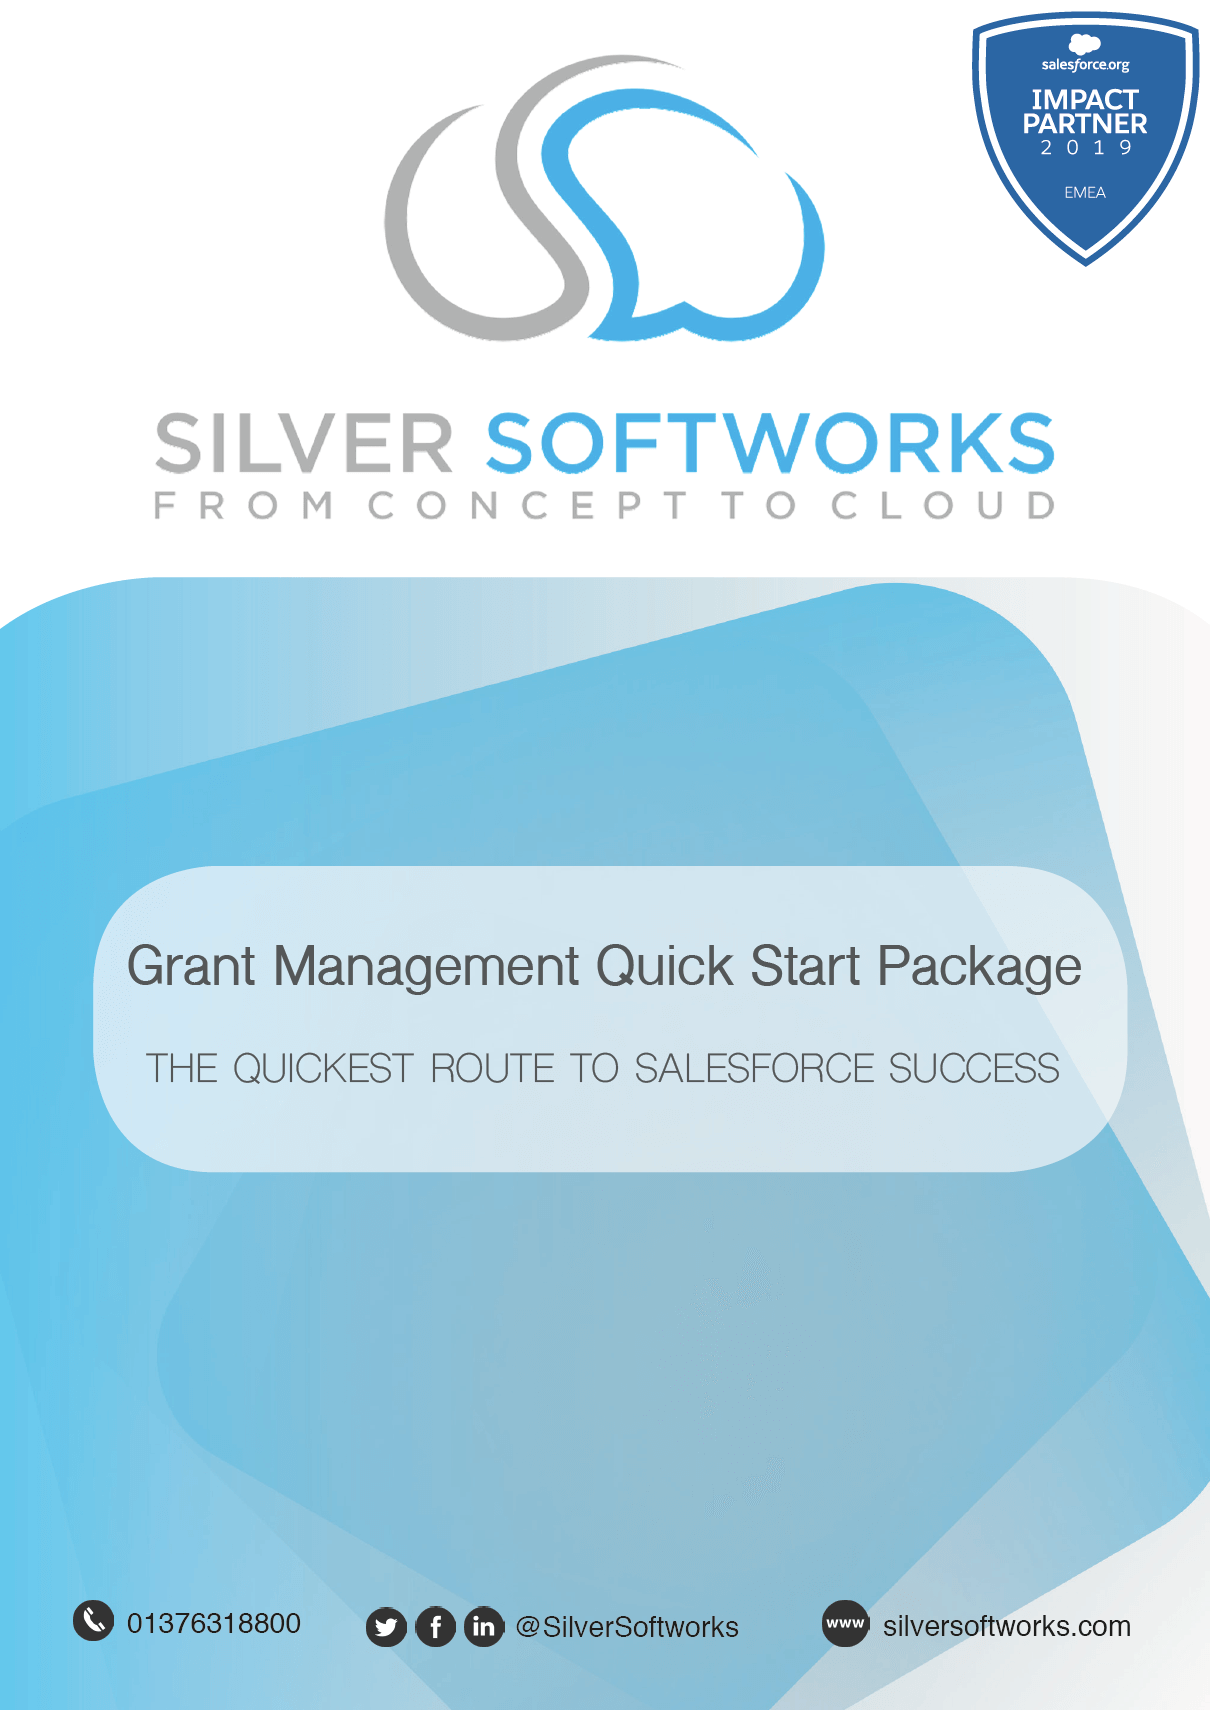 Grant Management Quick Start Package